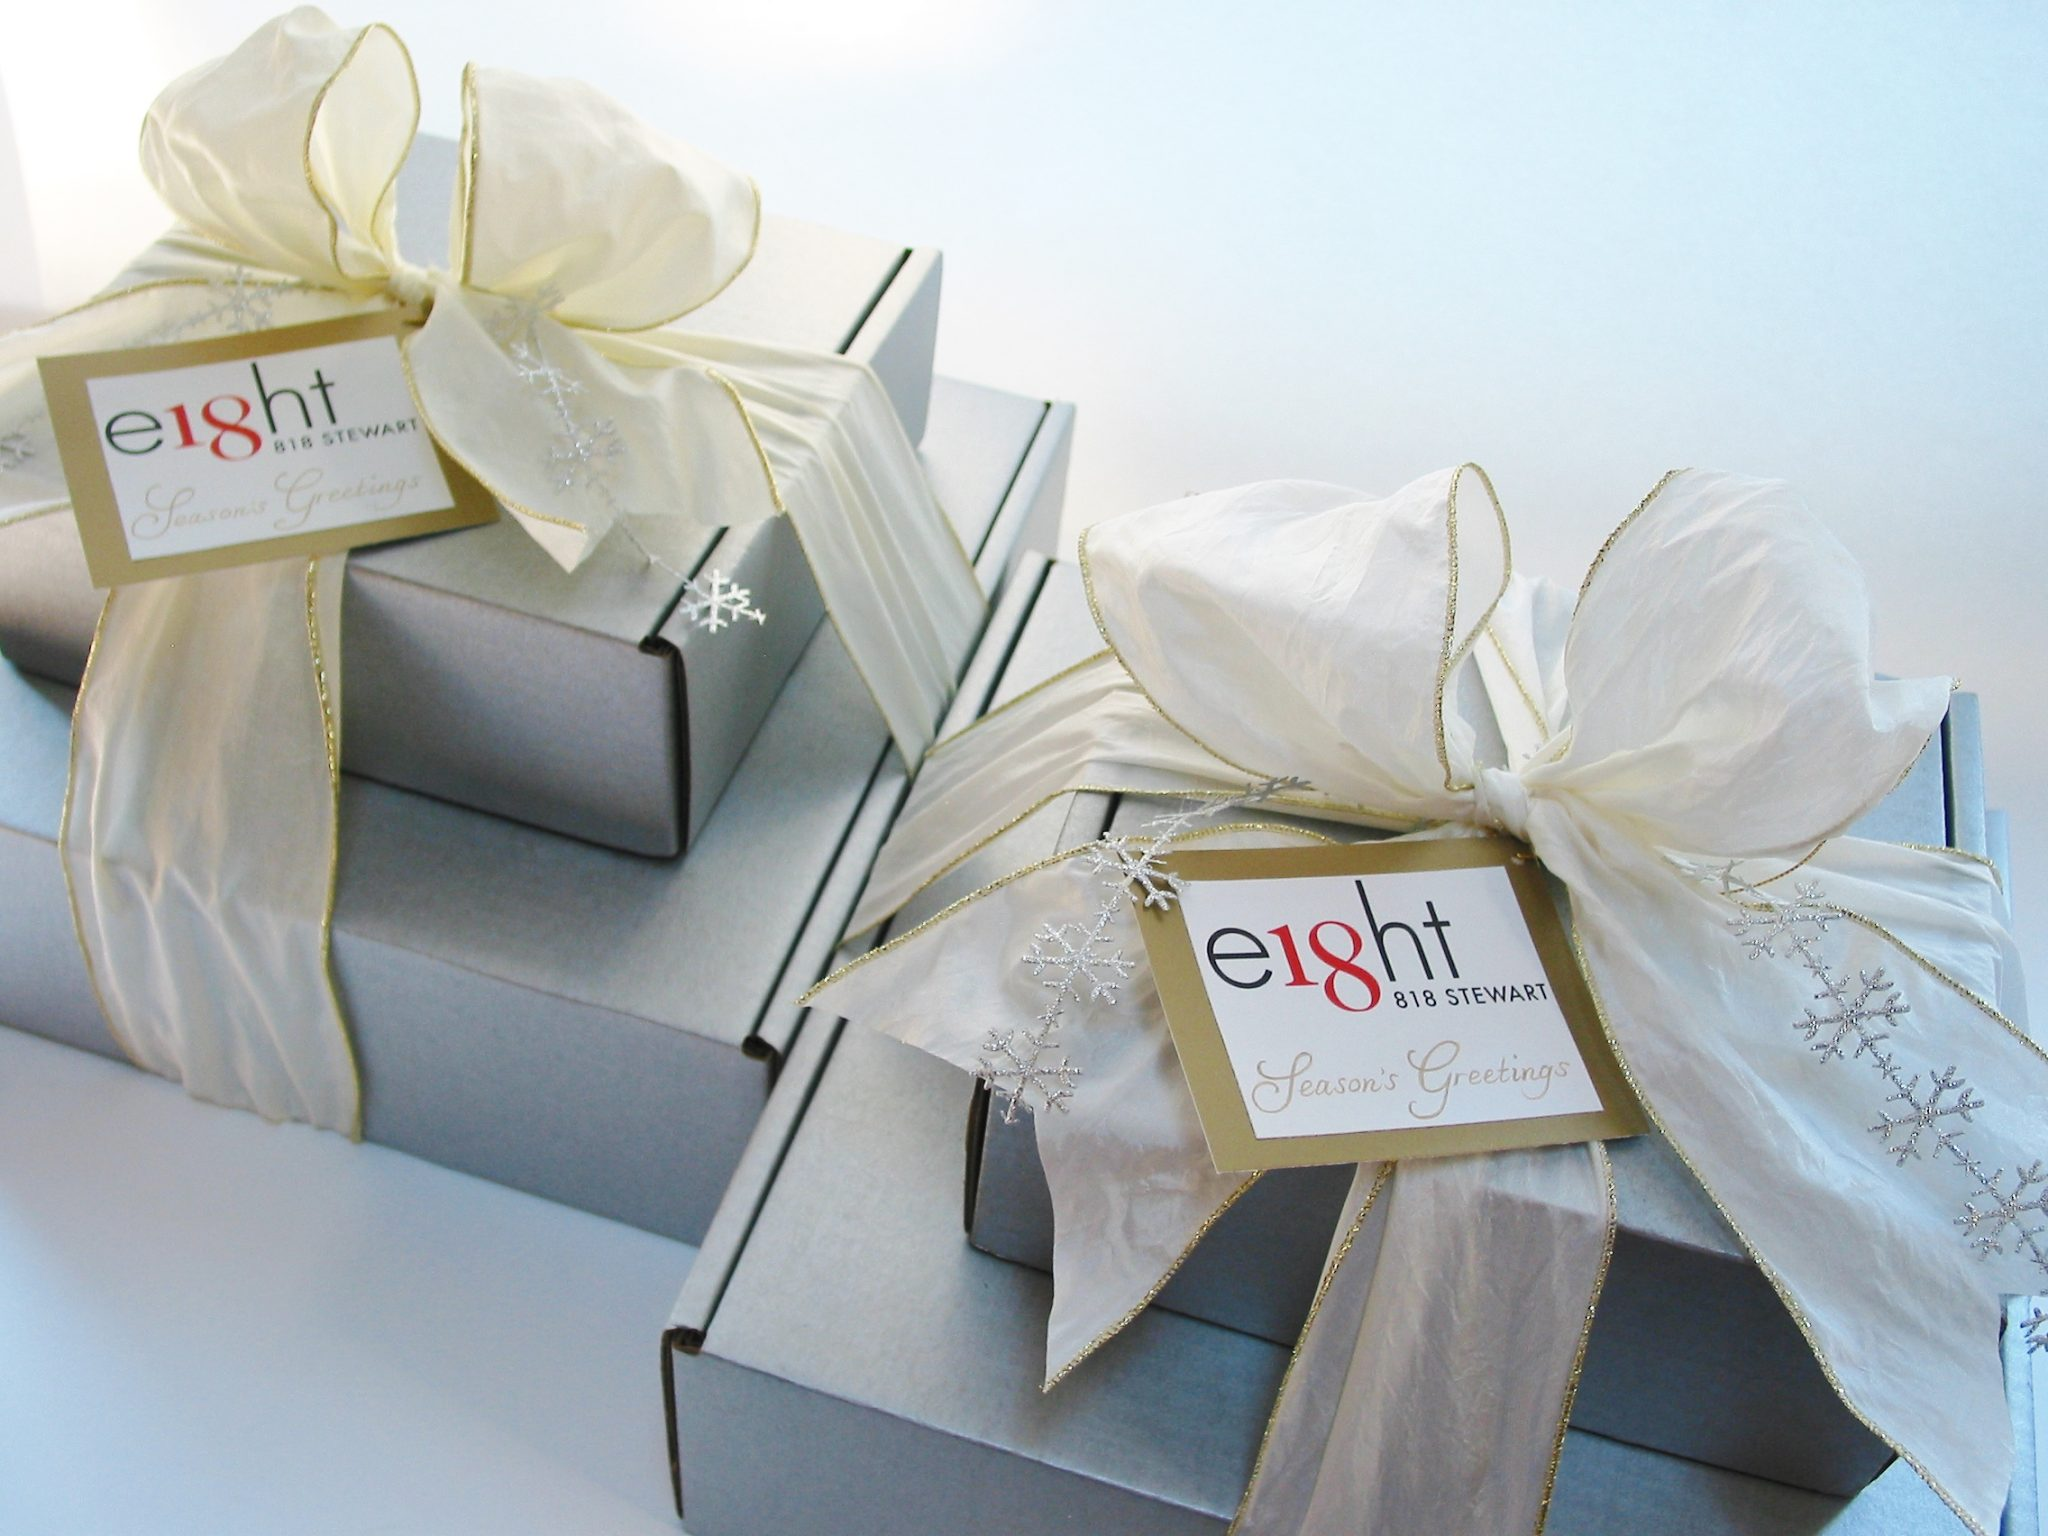 bumble B design's Custom Corporate Holiday Gift Towers